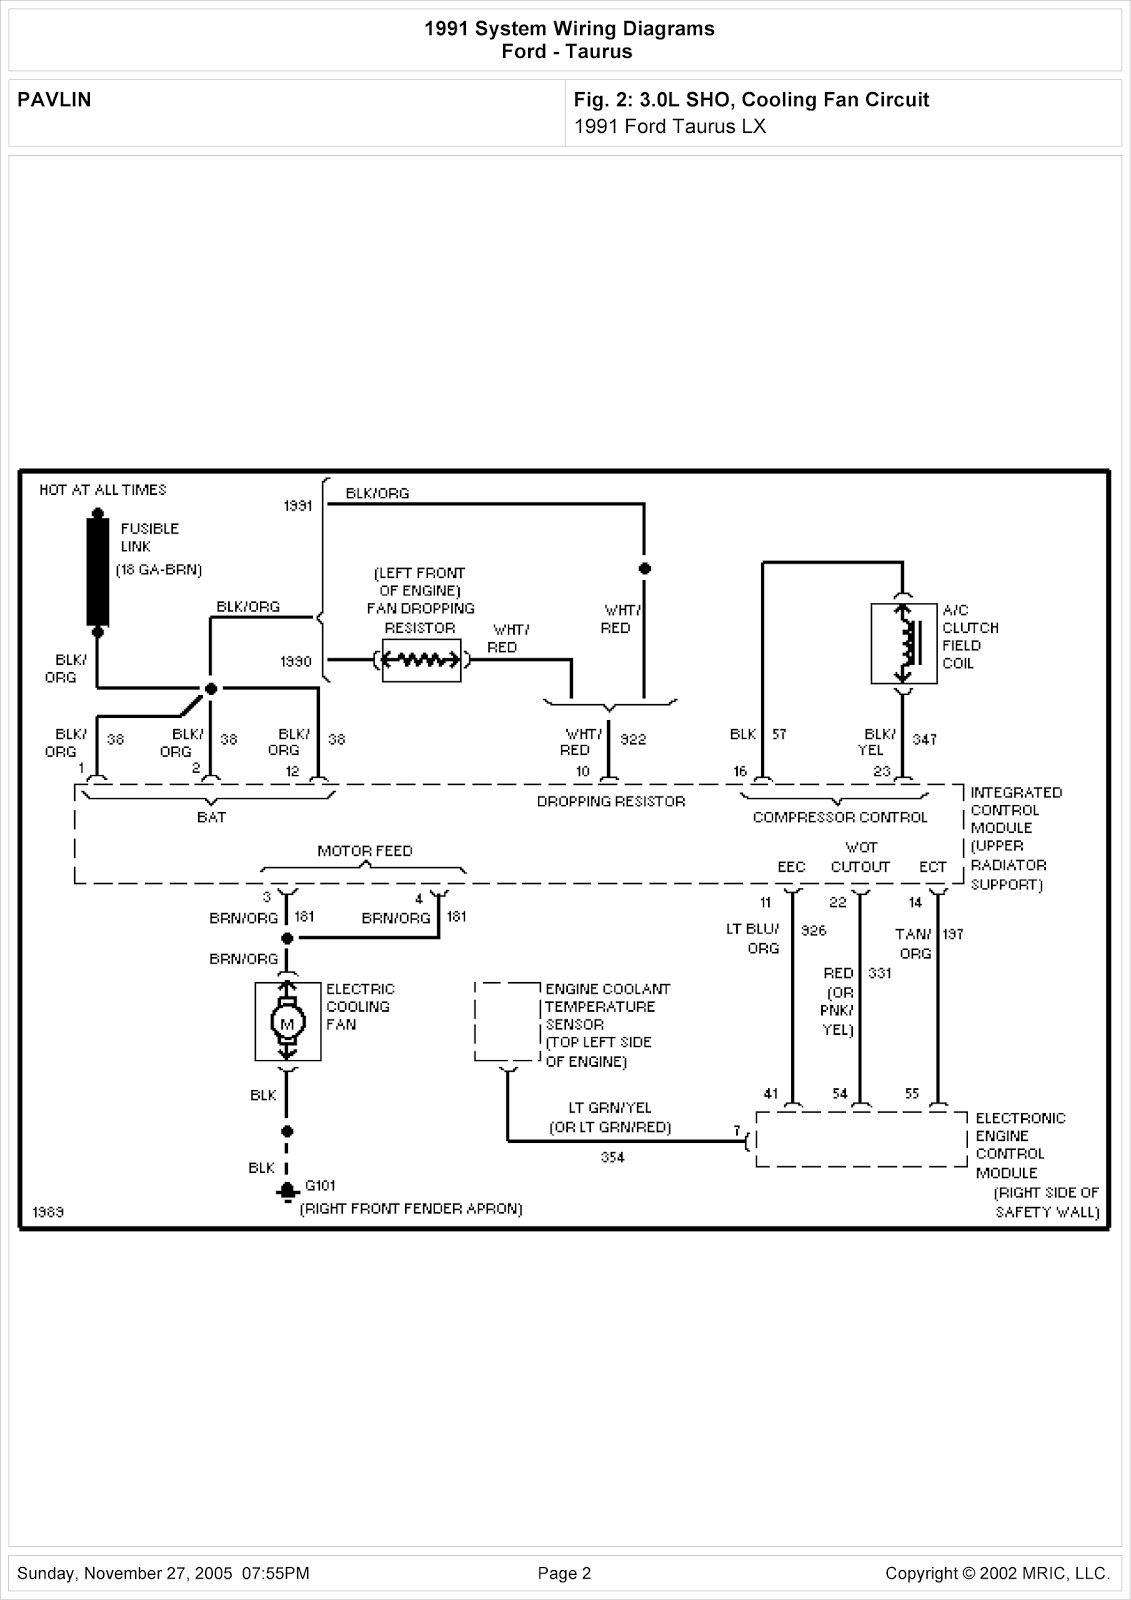 May 2011 Schematic Wiring Diagrams Solutions Kenworth Engine Fan Solenoid Diagram 1999 Ford Taurus System Cooling Circuit